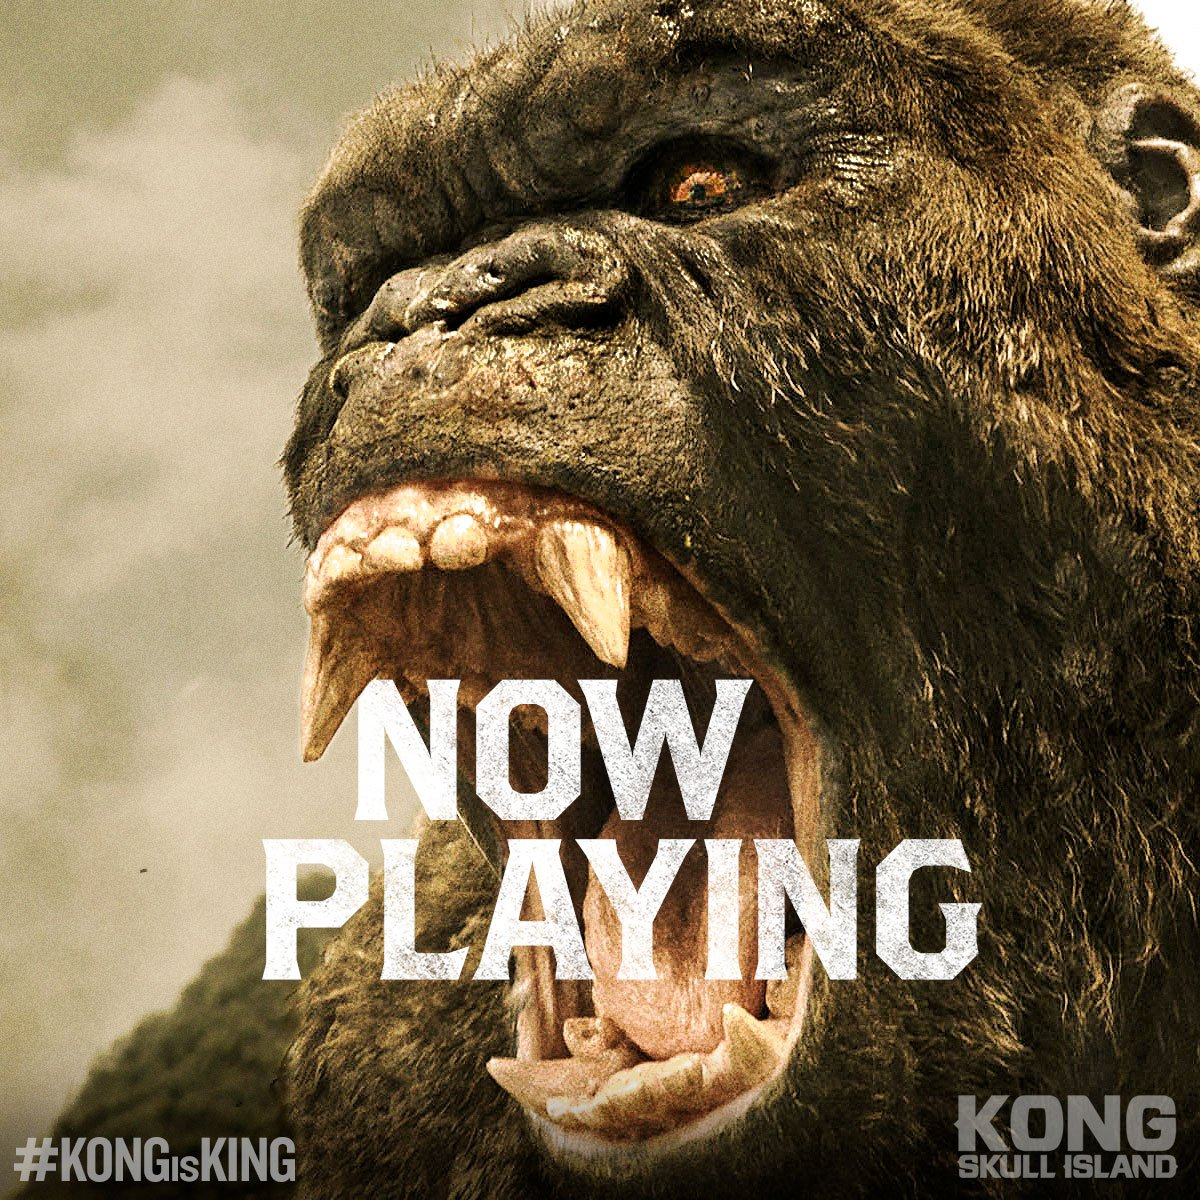 Foul Play Movie Quotes: 15 Leadership Quotes And Lessons From Kong: Skull Island